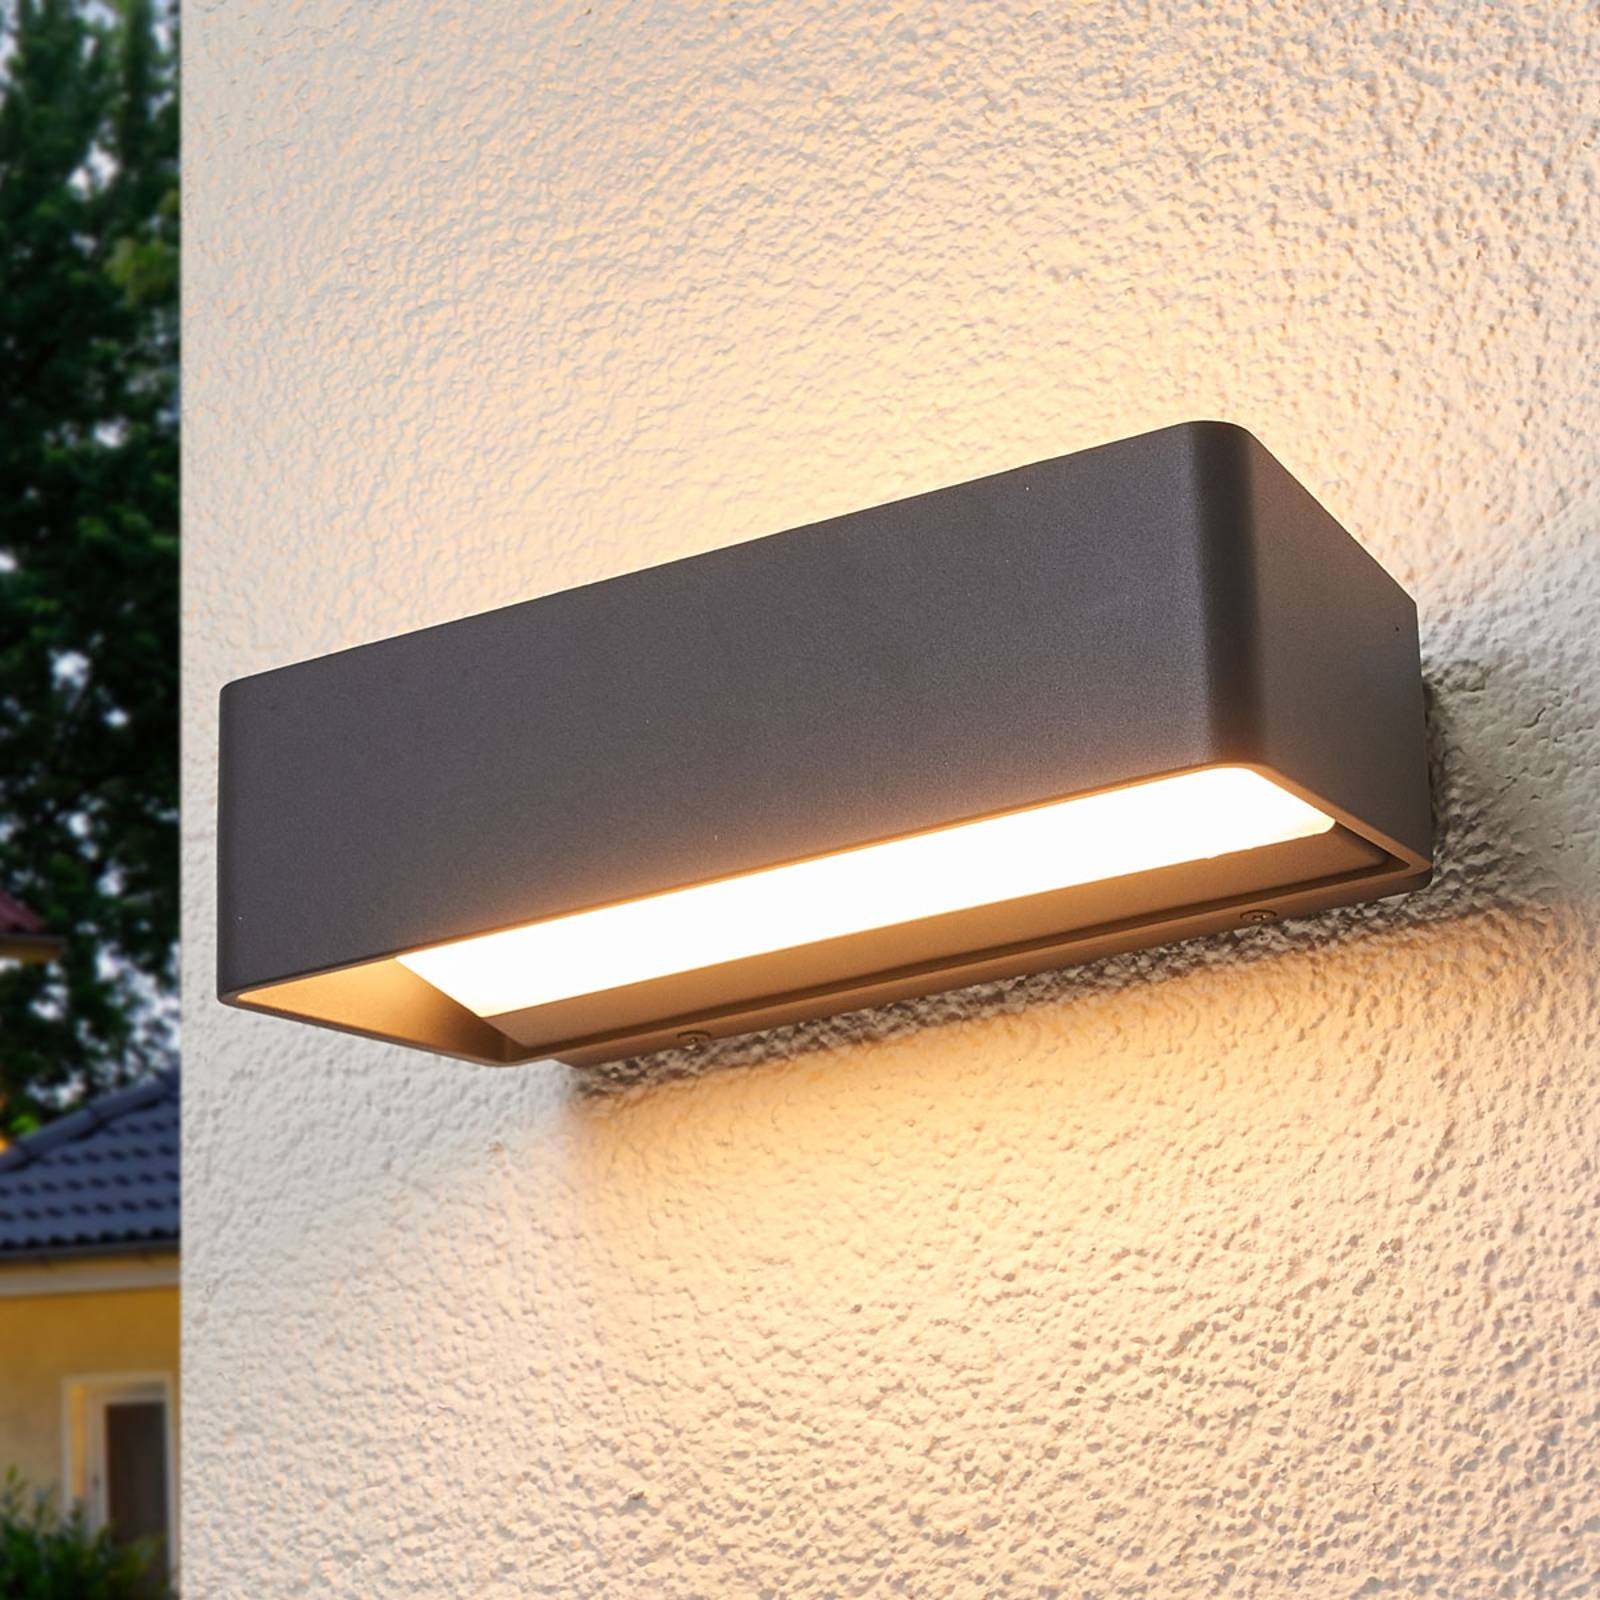 Logan - simple LED wall lamp for outdoors, IP65 from Lucande